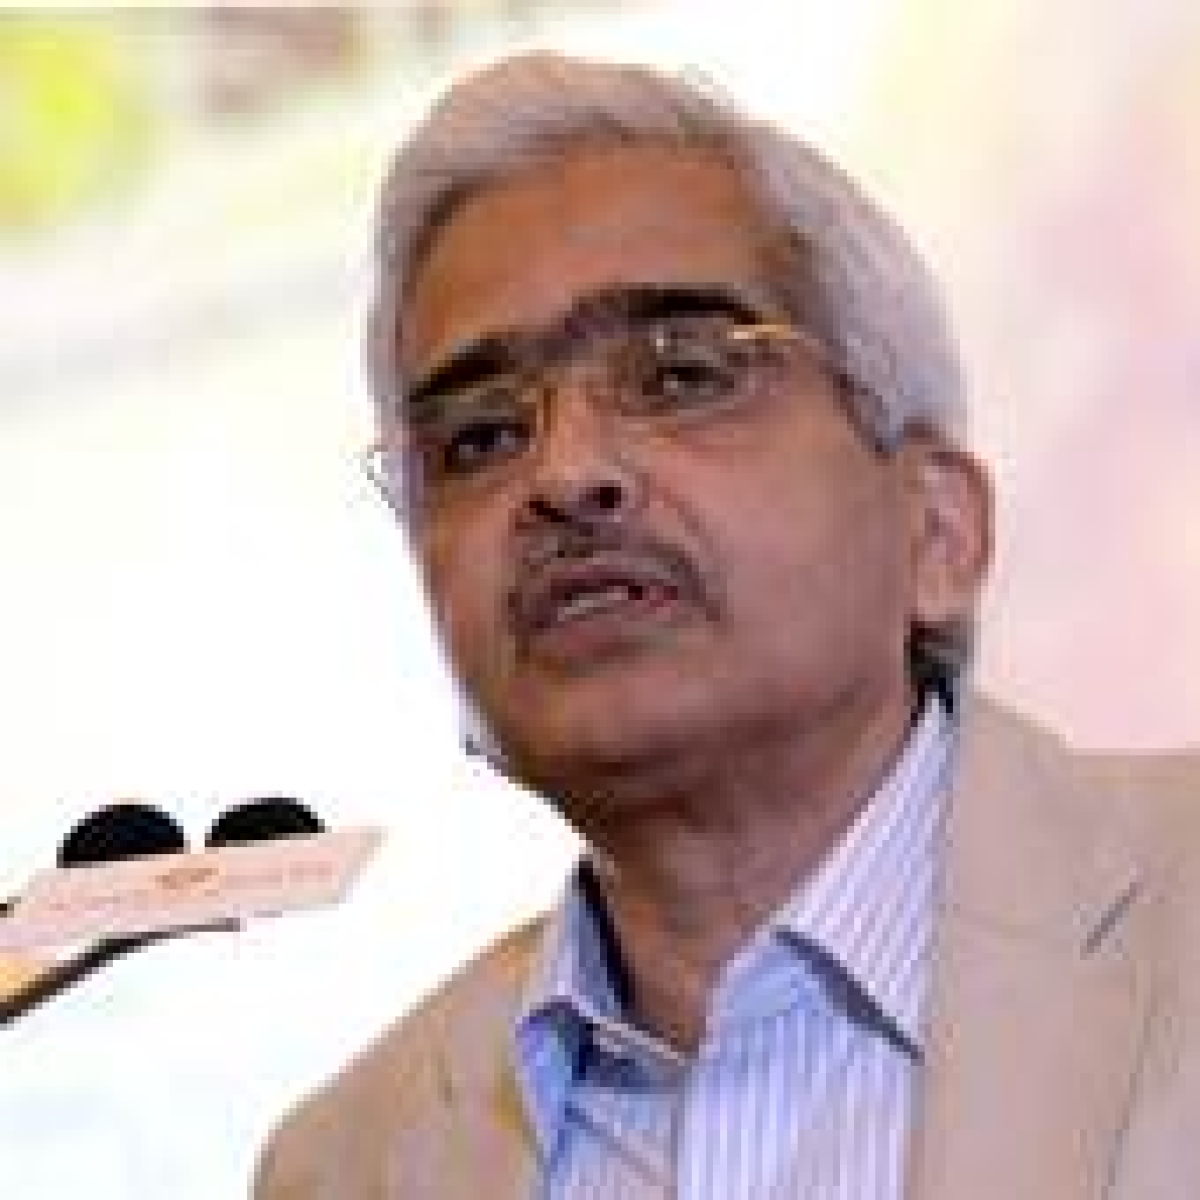 RBI governor Shaktikanta Das reveals banks have so far passed on only 29 bps of RBI 75 bps cuts